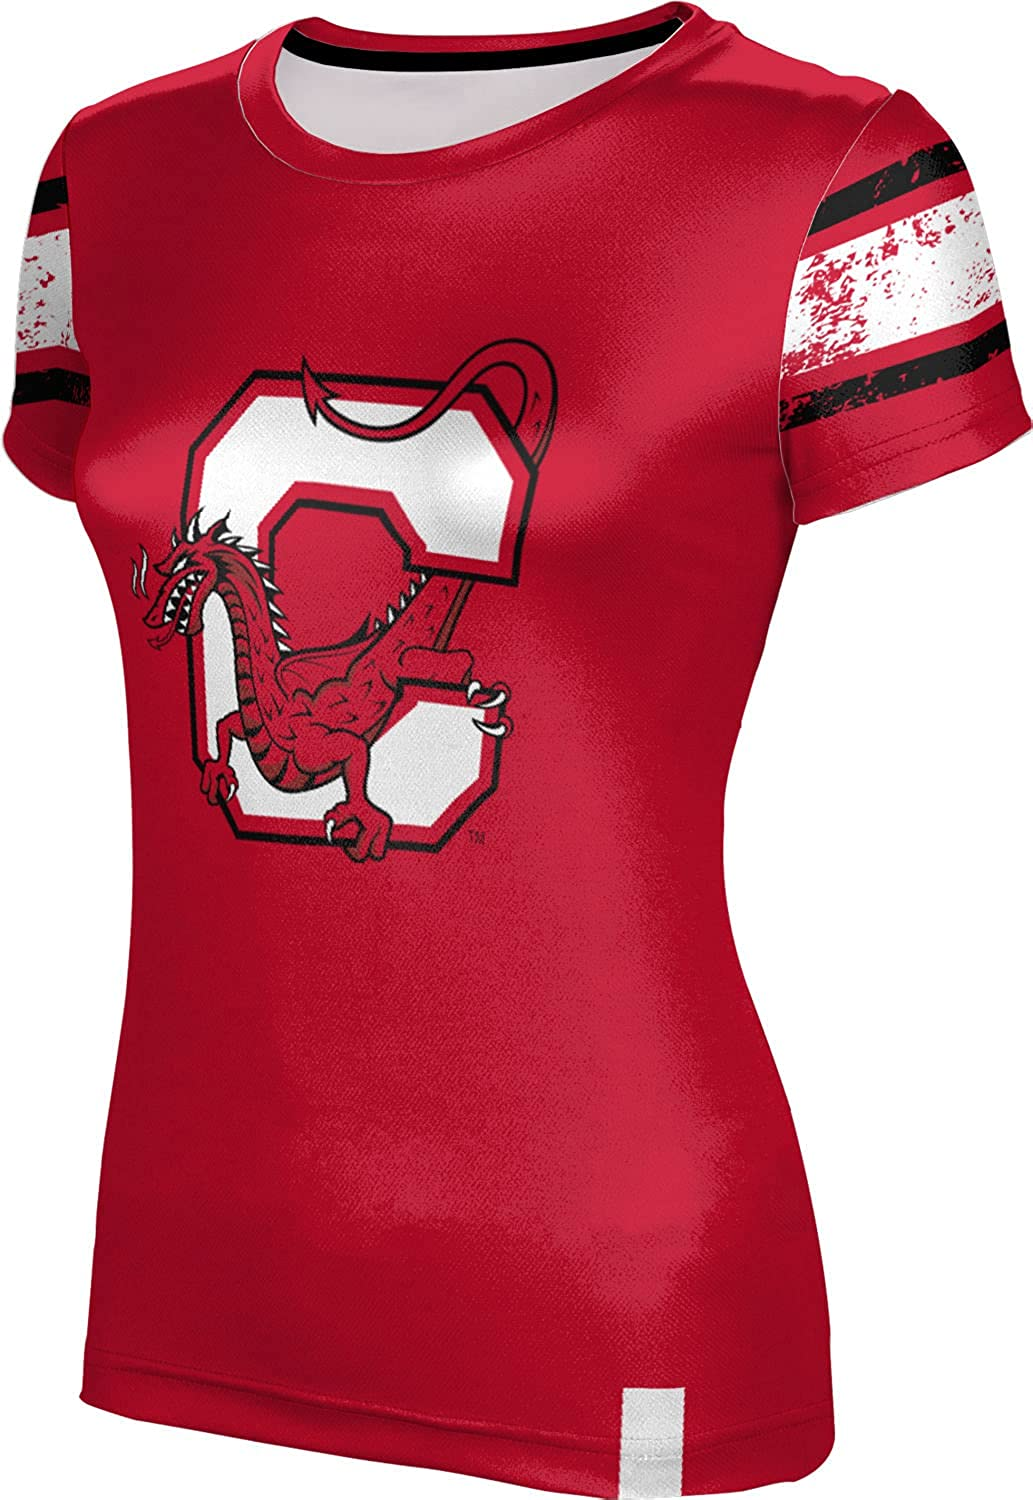 State University of New York College at Cortland Girls' Performance T-Shirt College Apparel